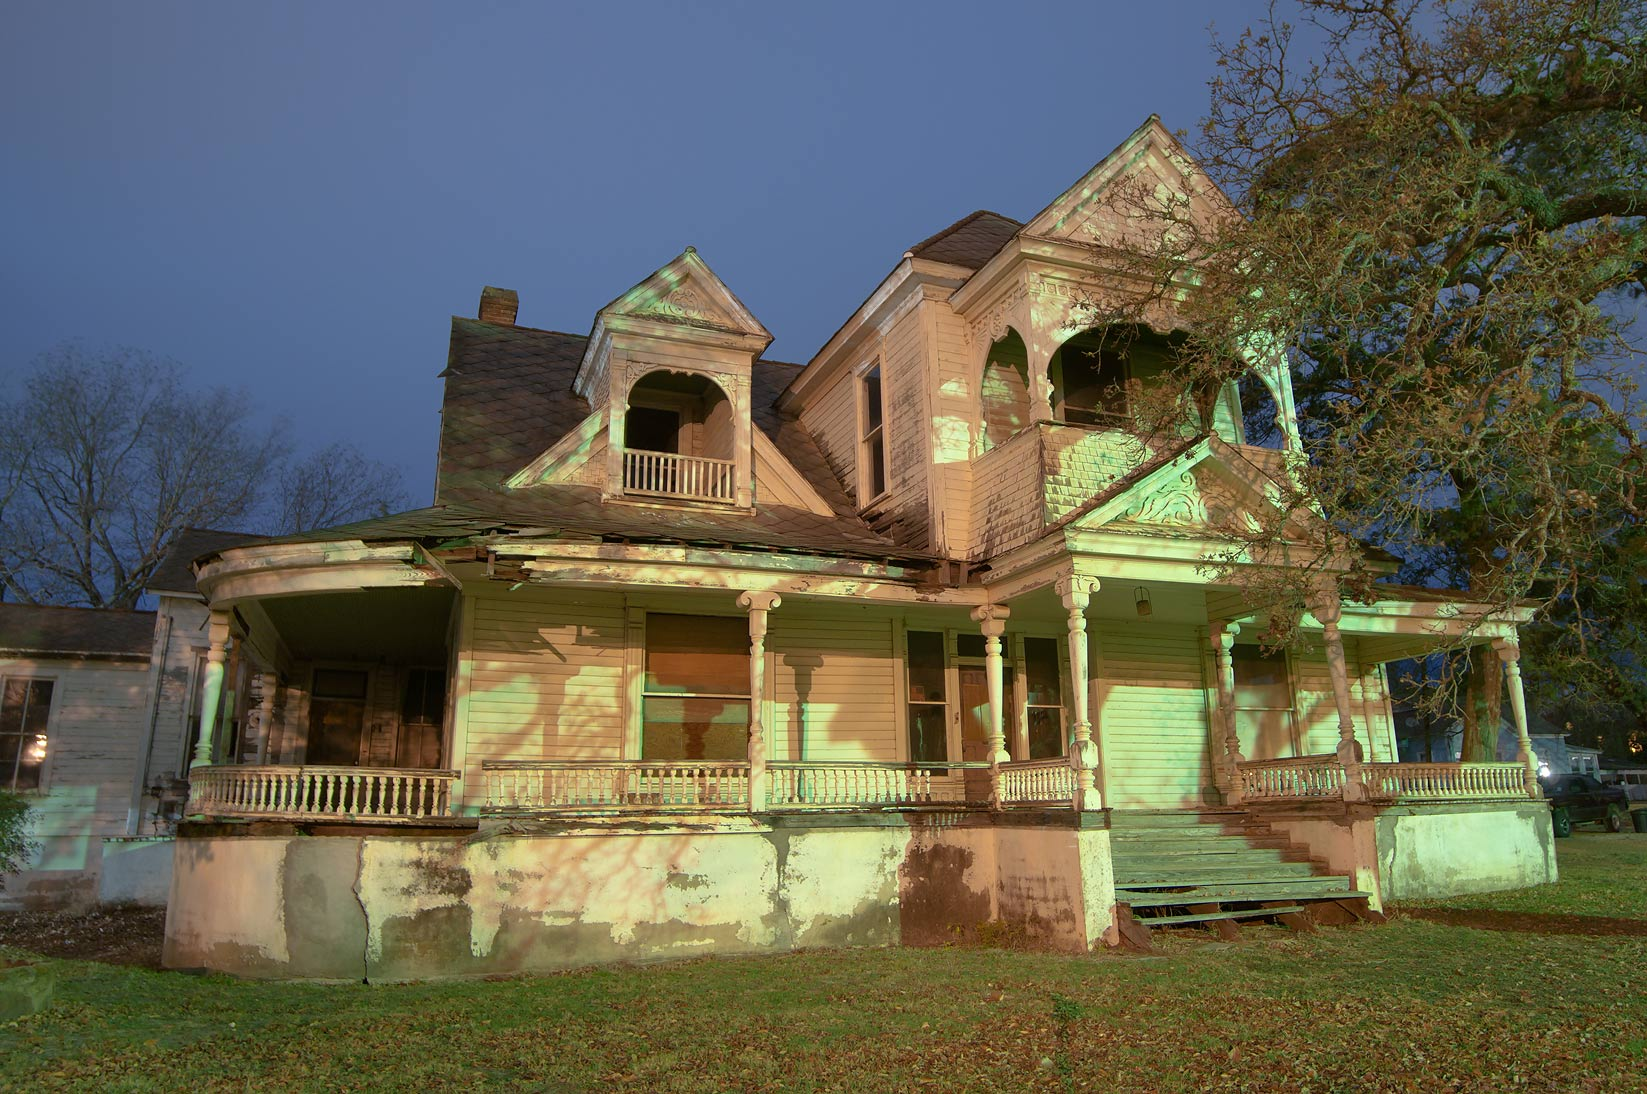 Jake Abrams-Allday House (1887) at 209 East...St. at early morning. Calvert, Texas